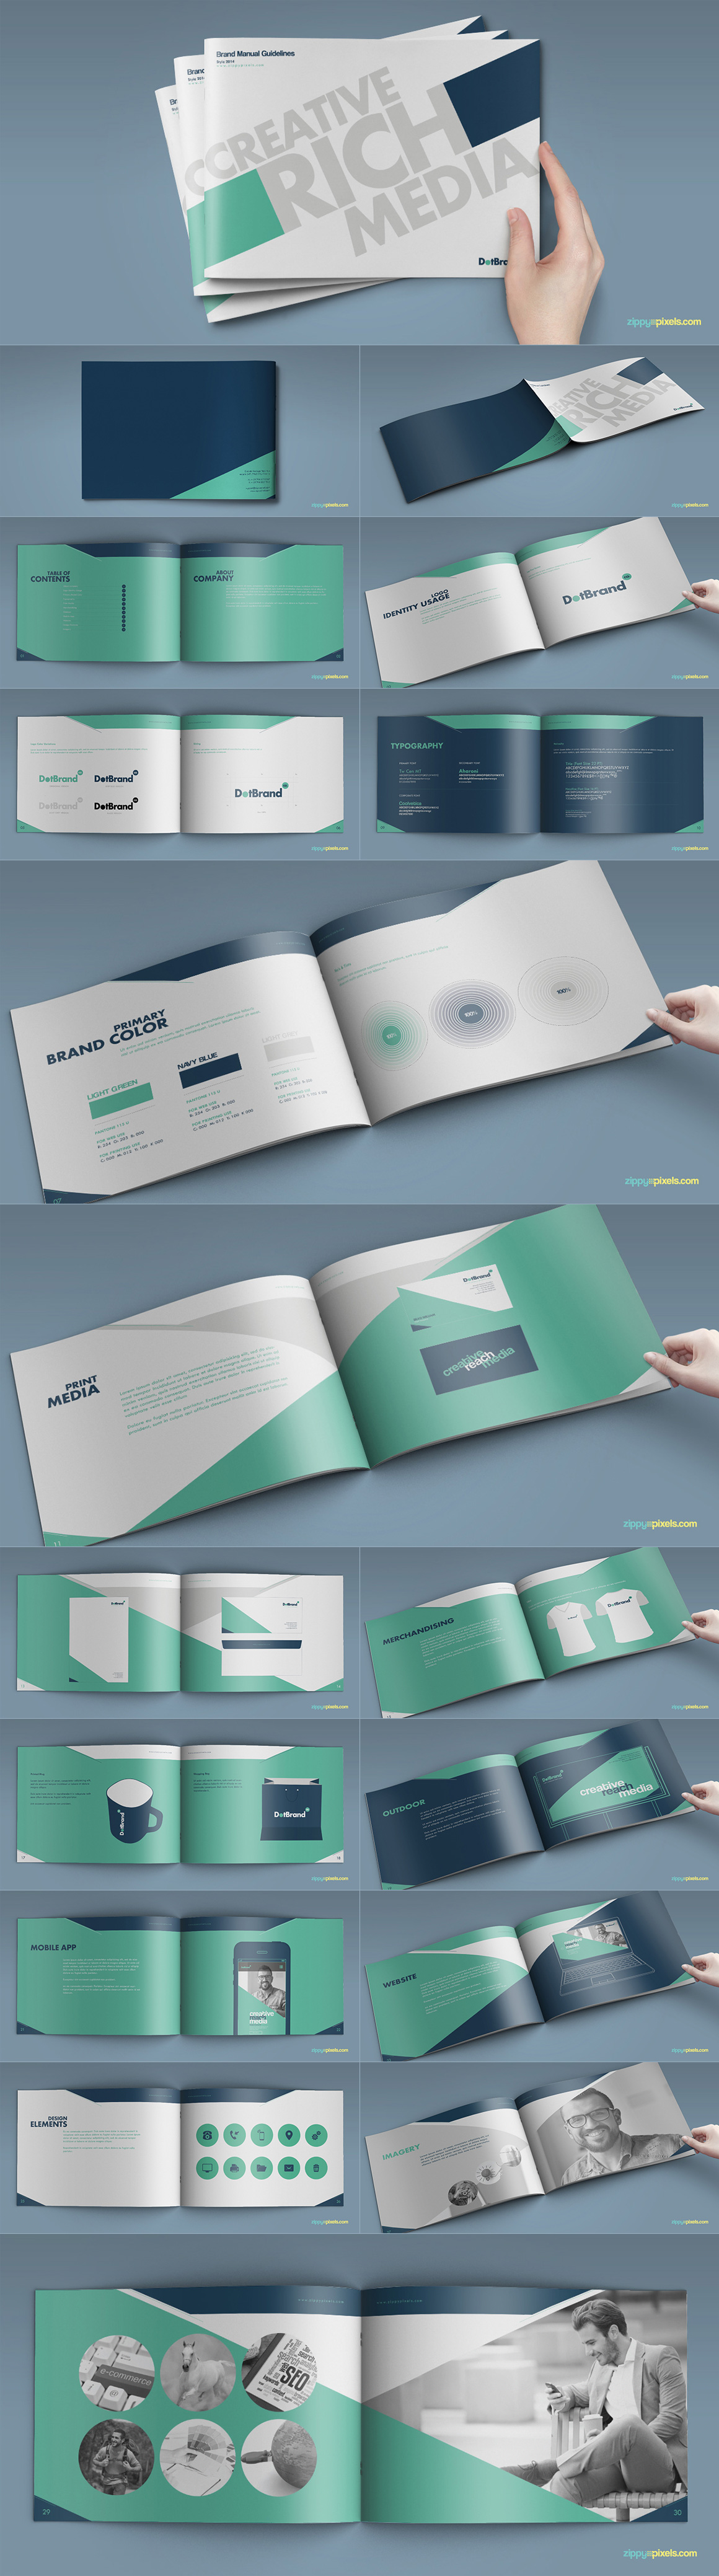 Style Guide & Brand Book Templates-strip5